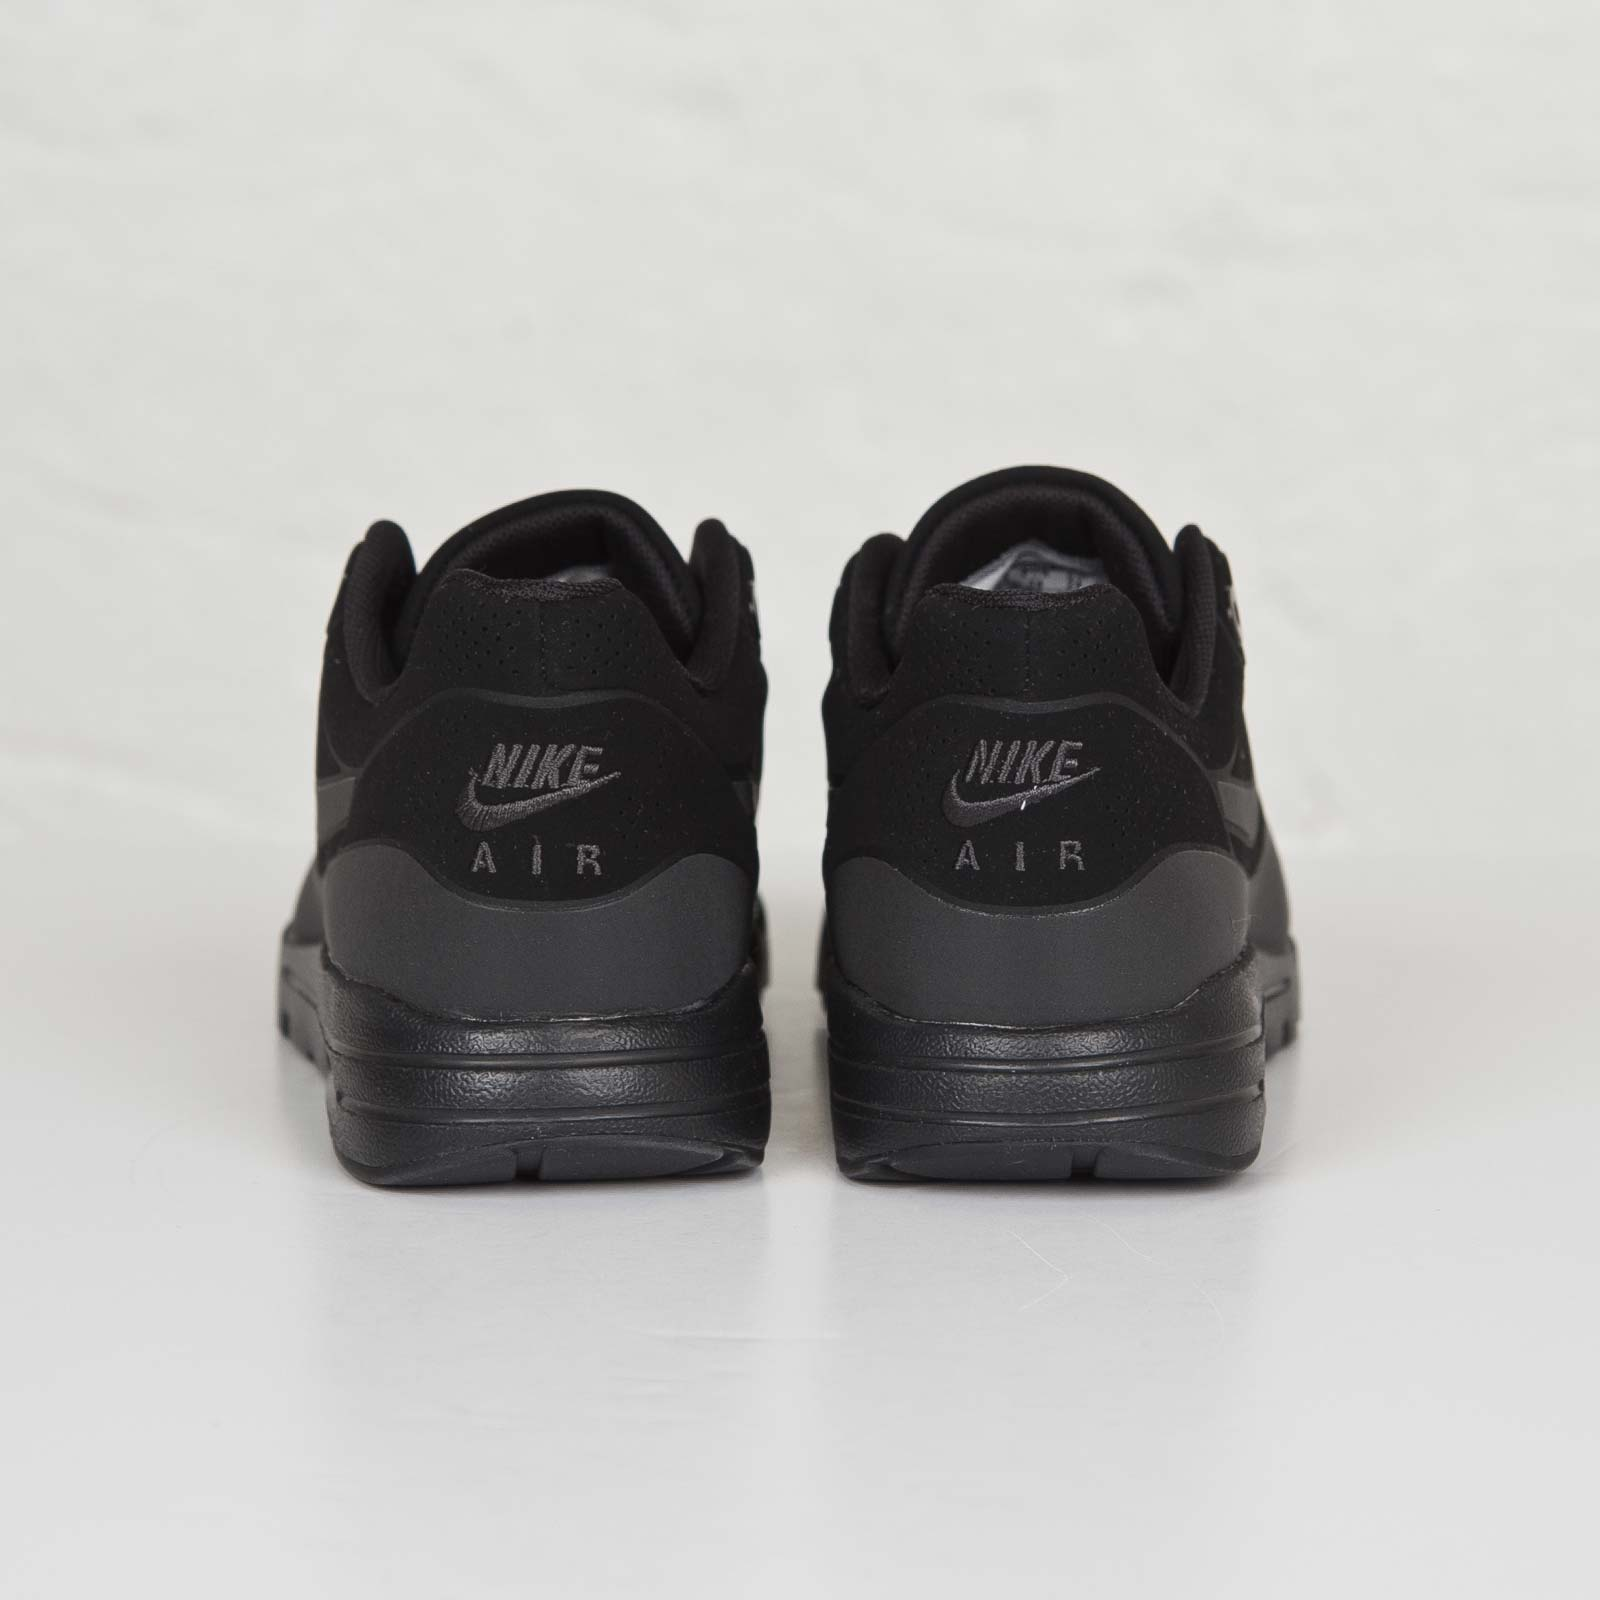 quality design 1e50e 6f593 Nike Wmns Air Max 1 Ultra Moire - 704995-003 - Sneakersnstuff   sneakers    streetwear online since 1999